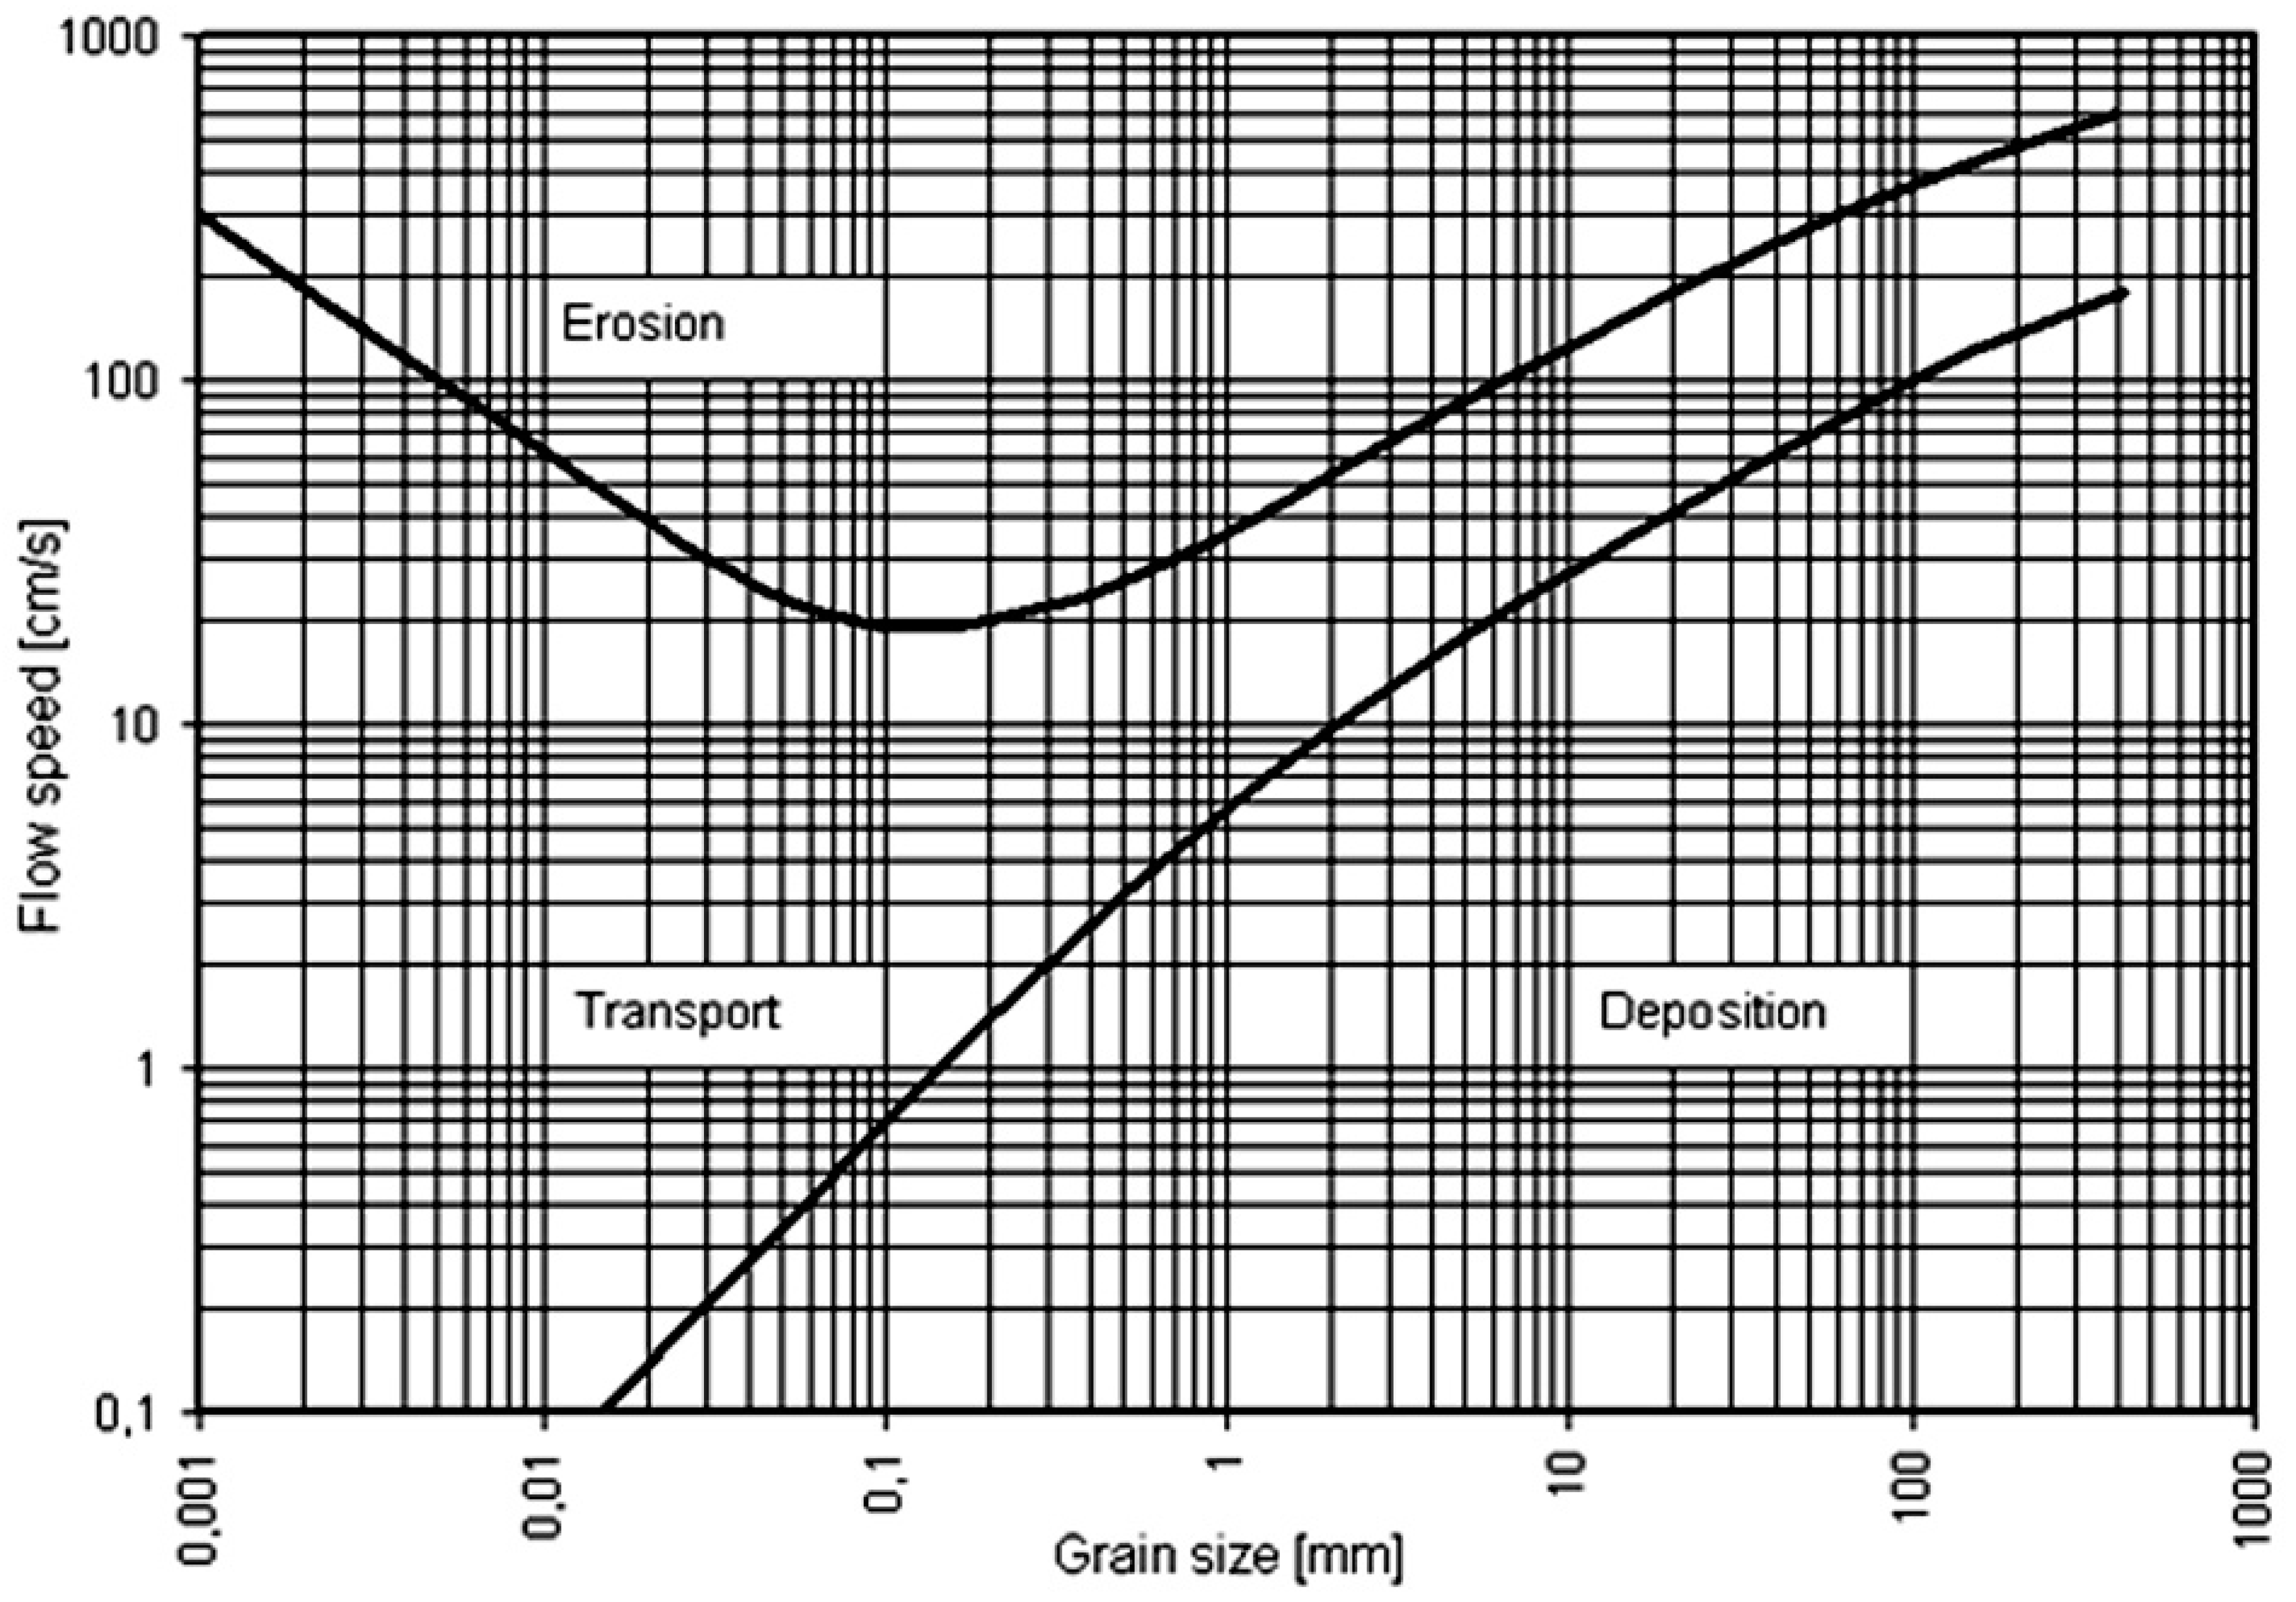 Ijerph free full text erosion and sediment transport modelling the hjulstrom diagram source wikipedia ijerph 15 00518 g001 ccuart Images